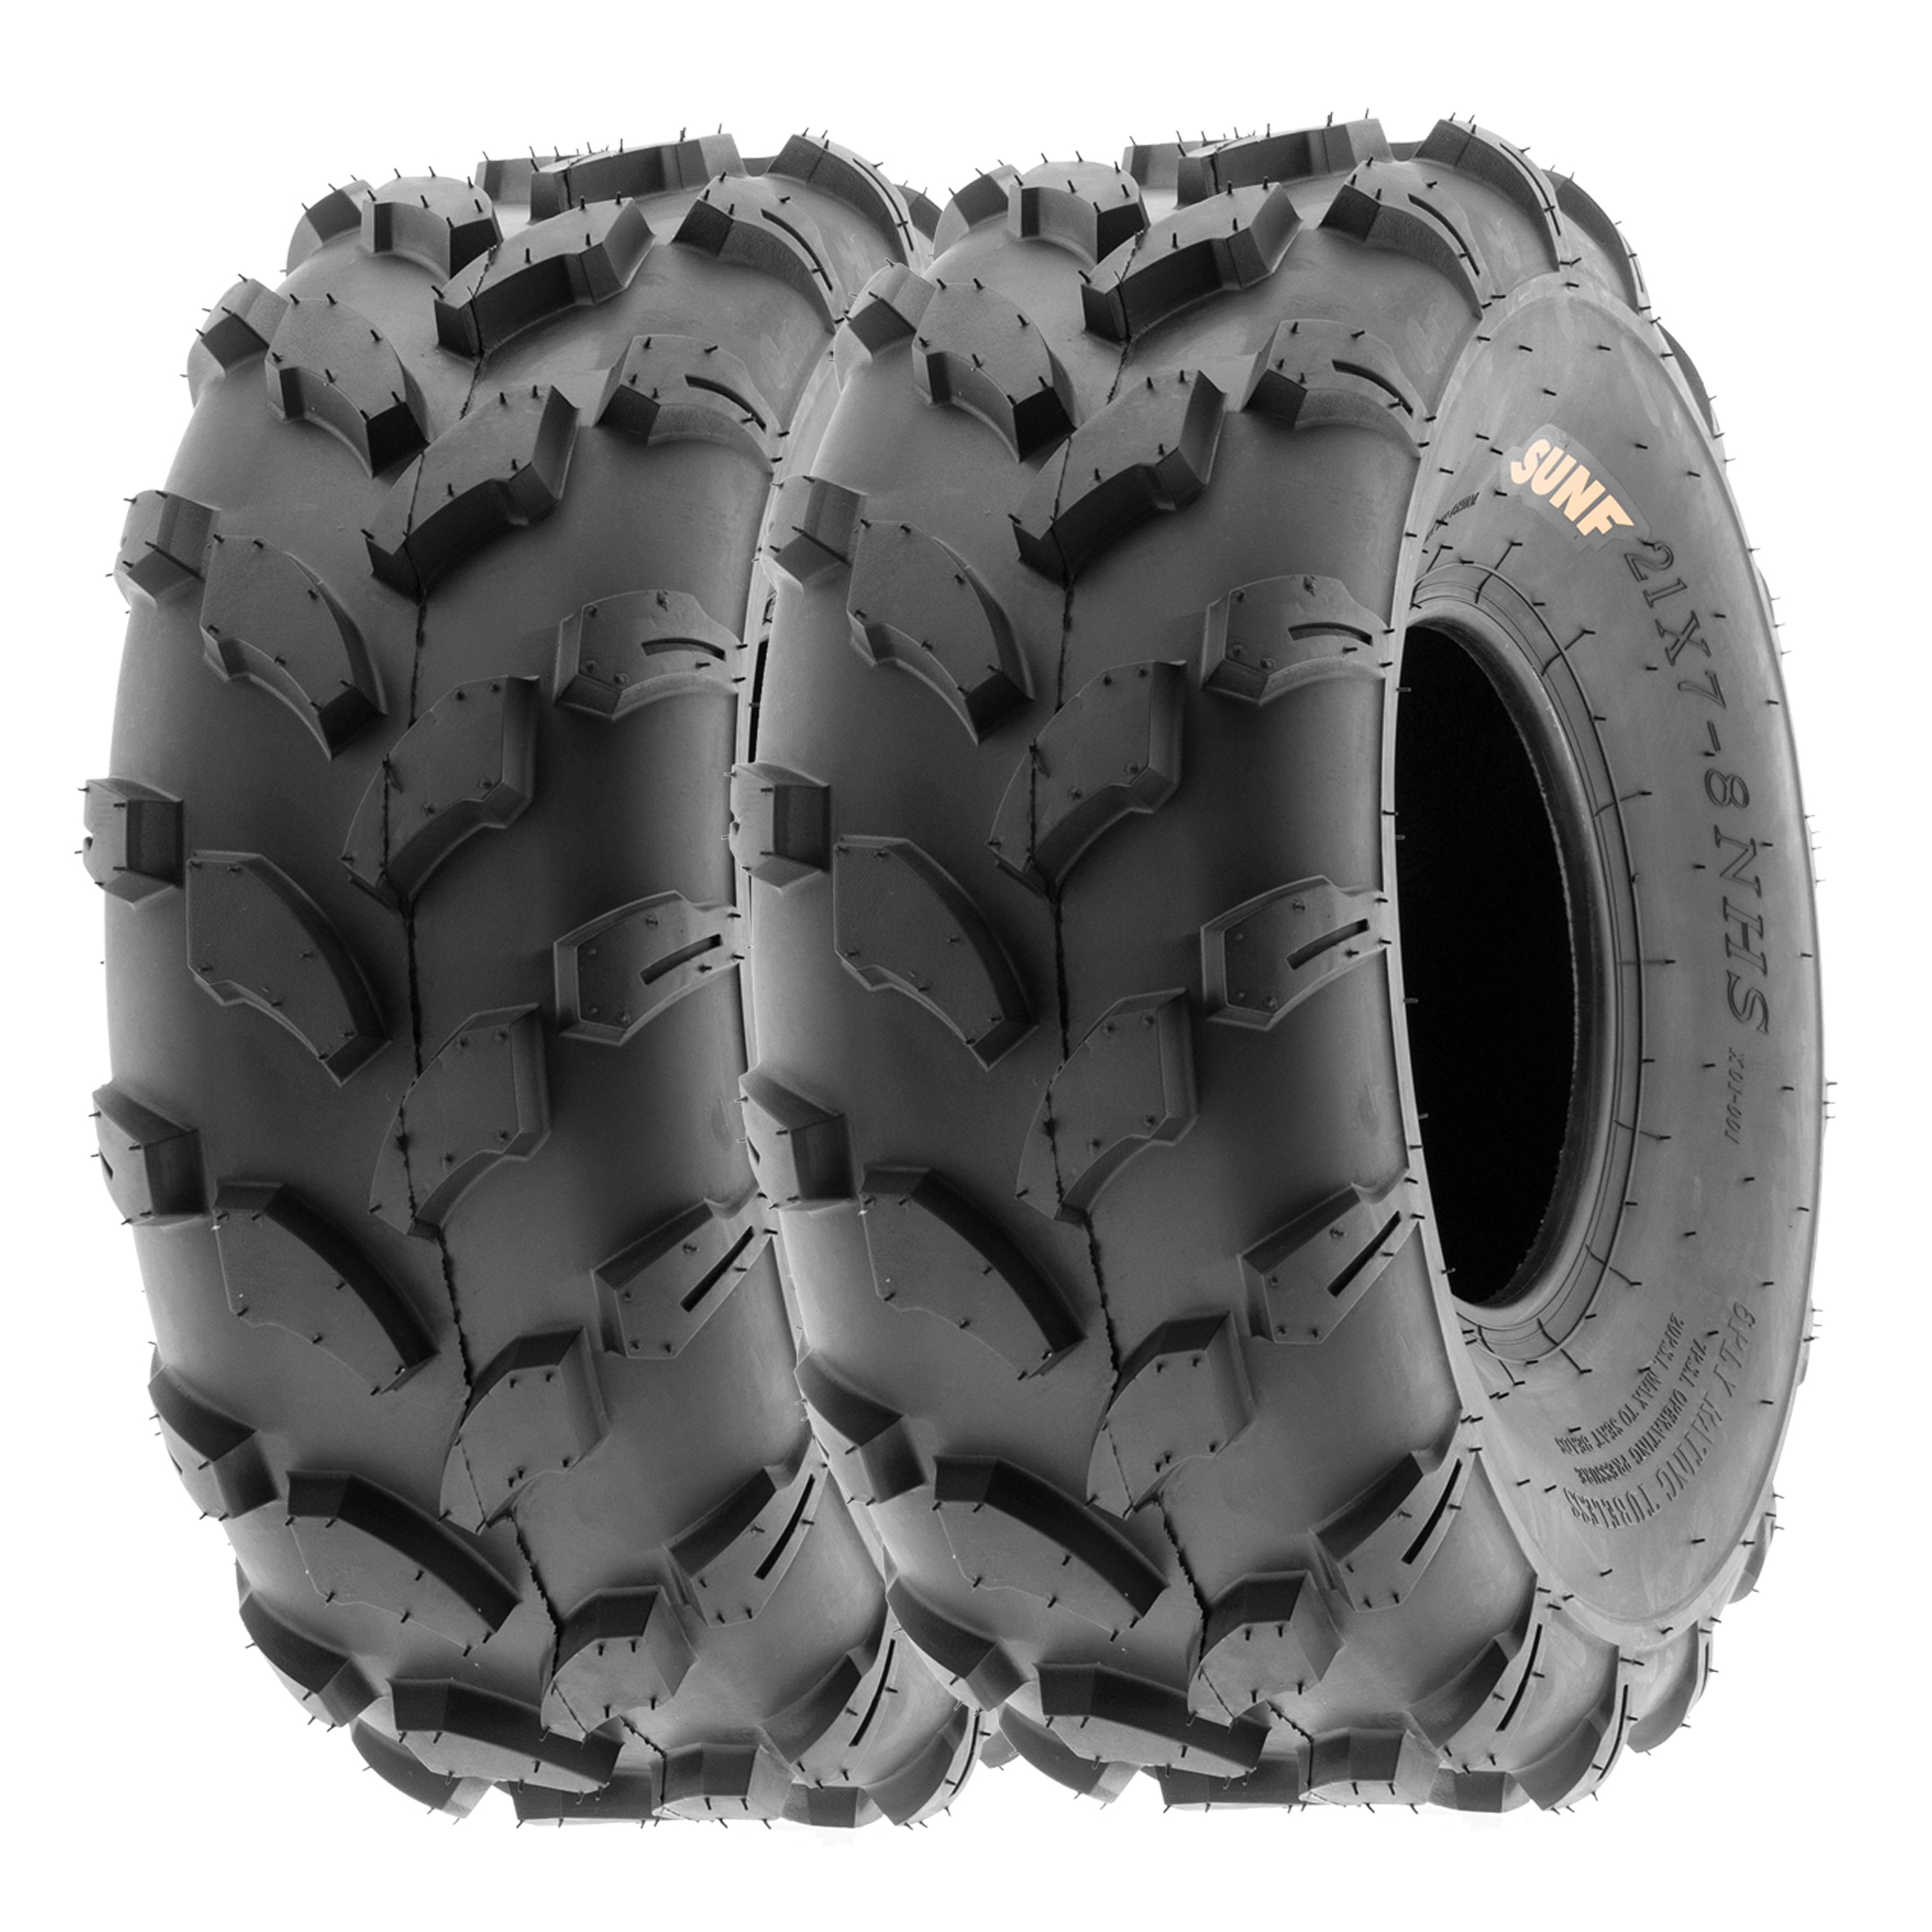 SunF 22x10-10 22x10x10 ATV UTV Sport Race Replacement 6 PR Tubeless Tires A021, Set of 2